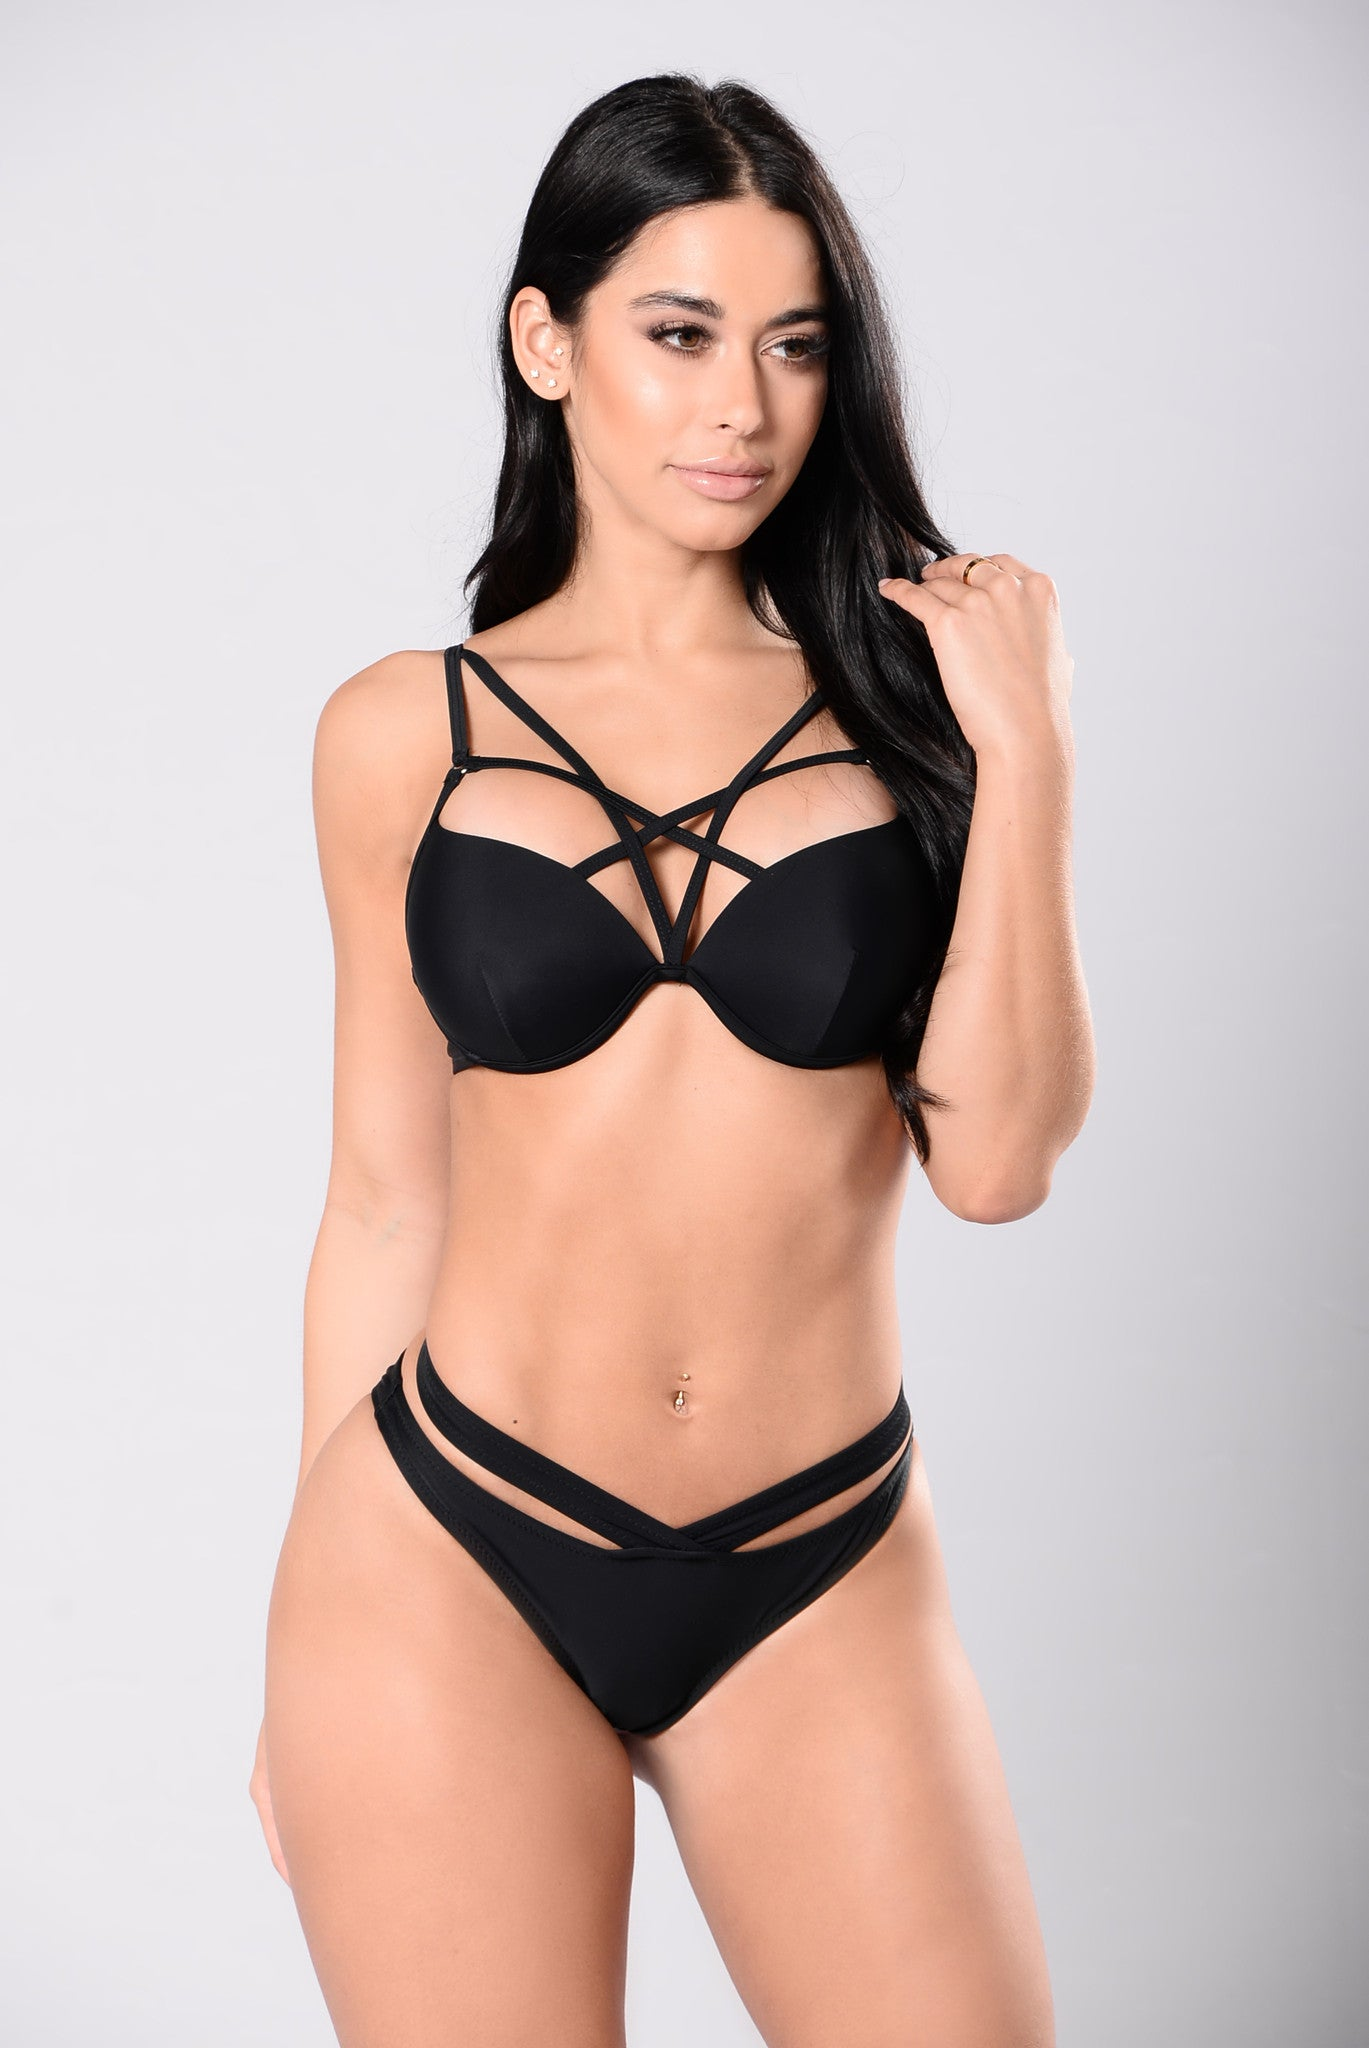 ccb9809878e00 Swimming In Champagne Bikini - Black